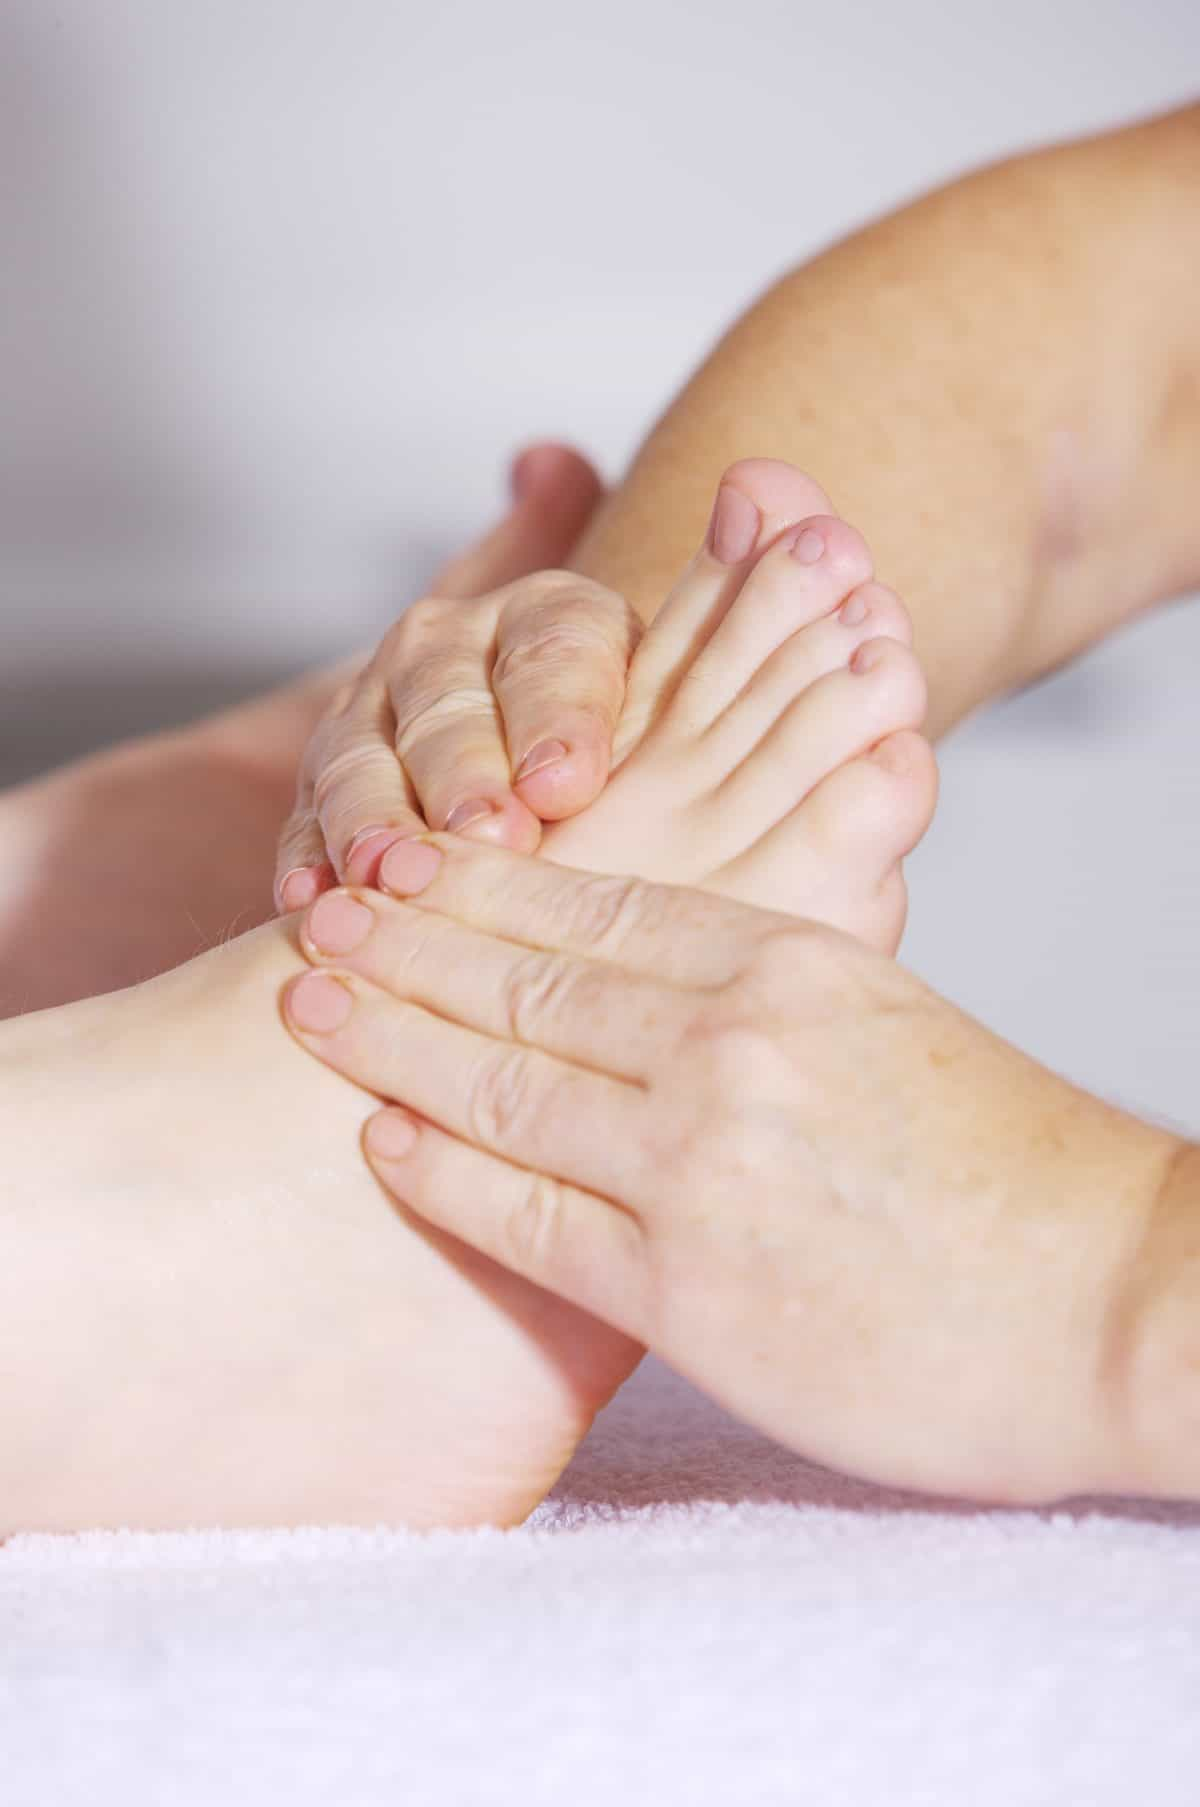 Light Touch Energy Reflexology Combines The Best Of Reflexology With